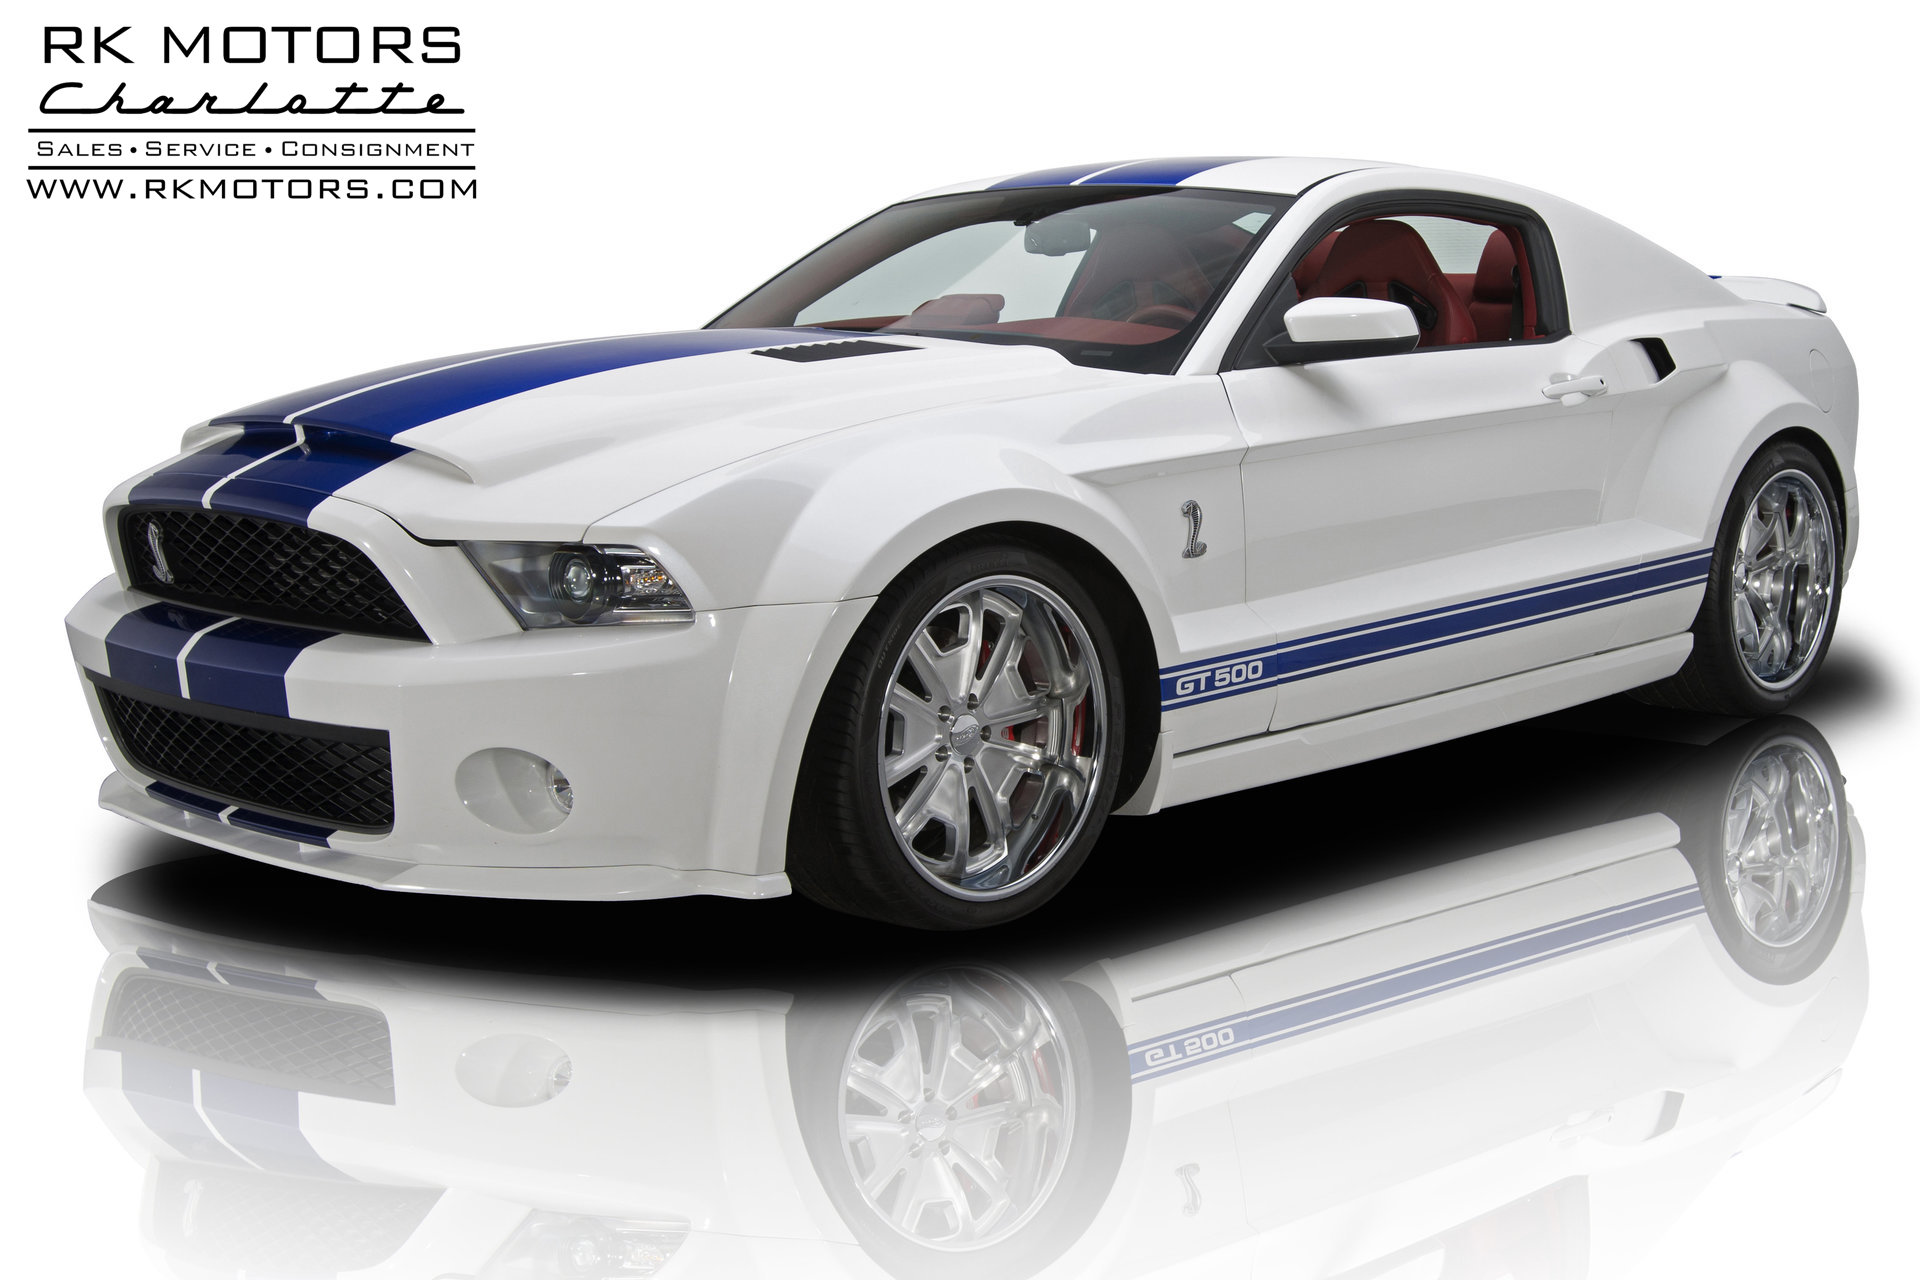 135988 2012 ford mustang rk motors classic and performance cars for sale. Black Bedroom Furniture Sets. Home Design Ideas